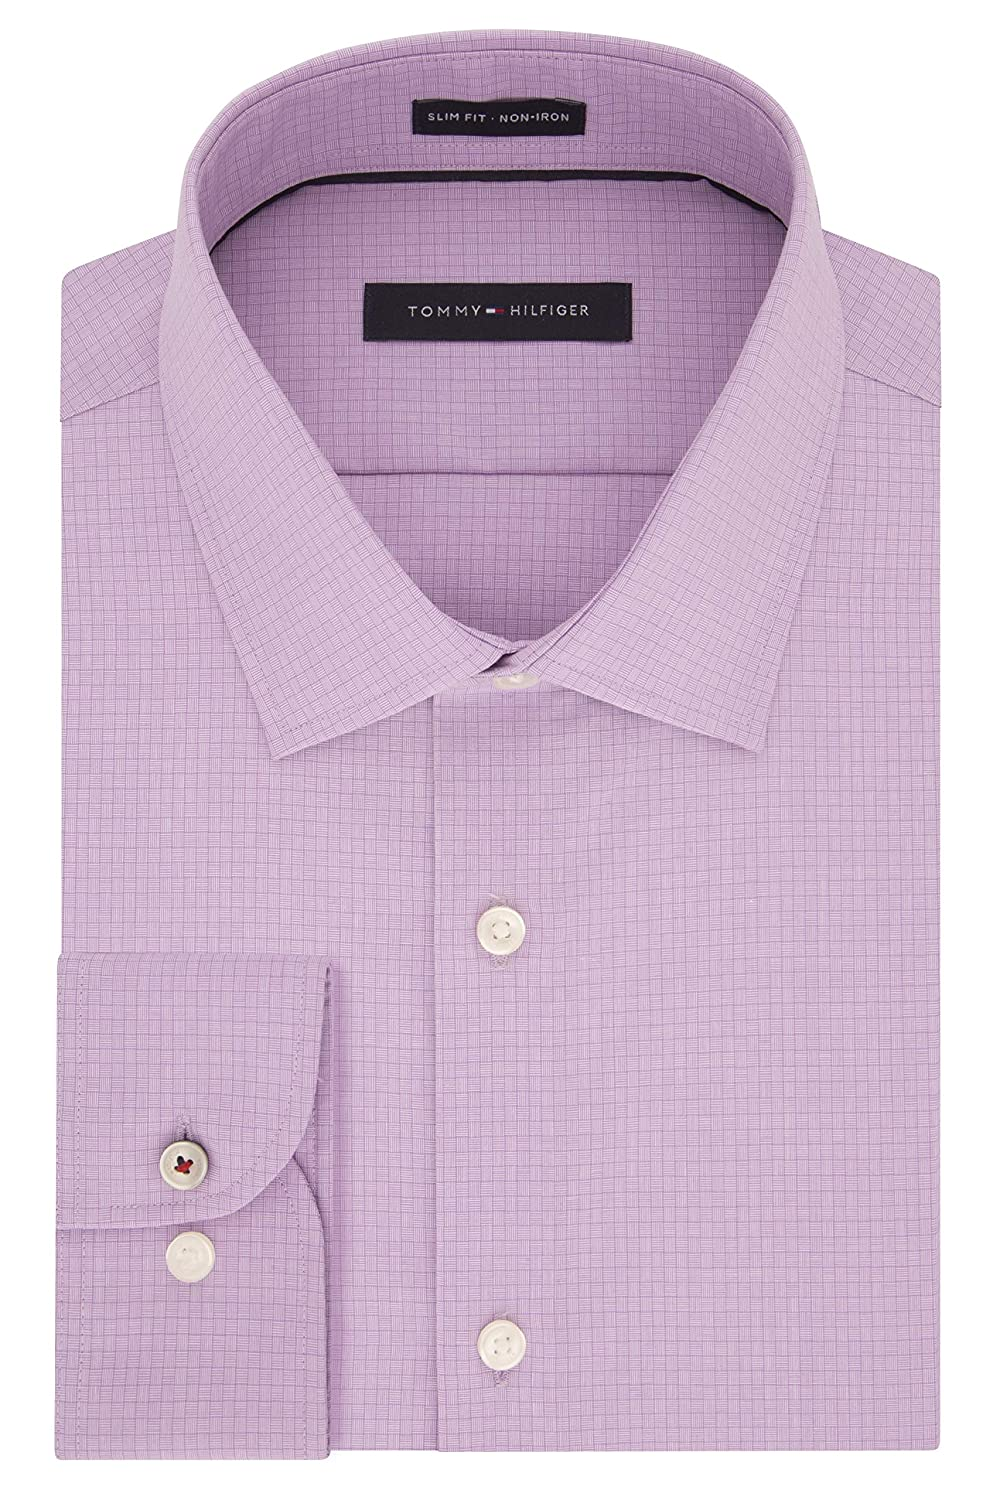 663d0d90a Tommy Hilfiger Men's Dress Shirts Non Iron Slim Fit Check at Amazon Men's  Clothing store: